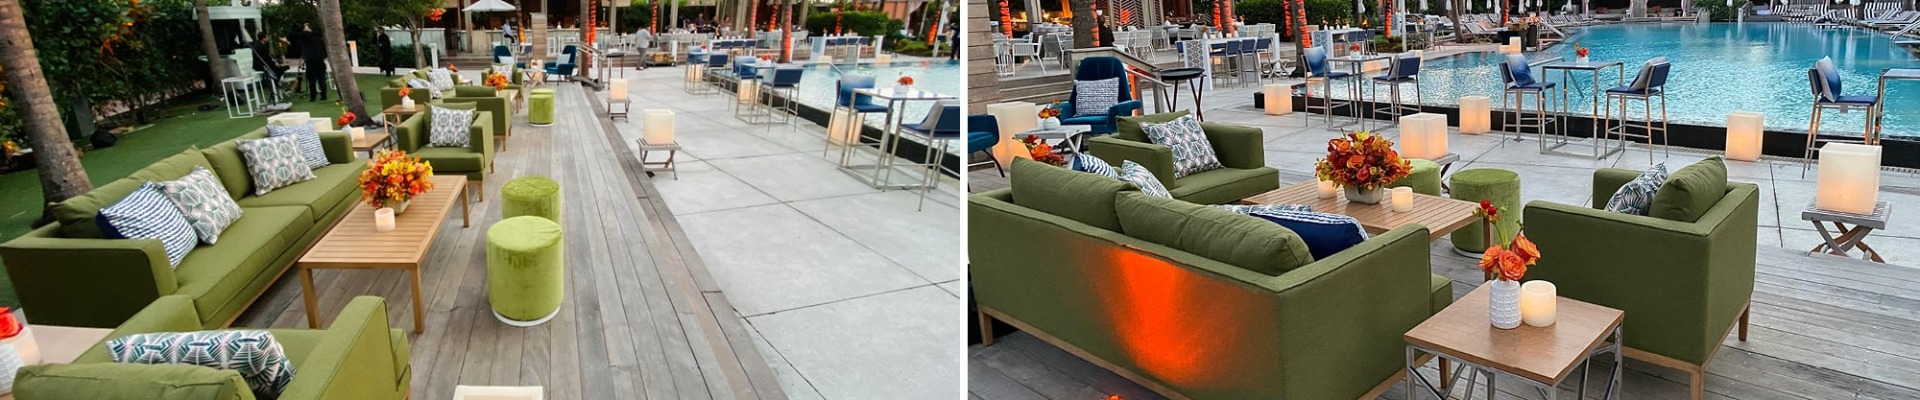 green outdoor furniture rental by pool